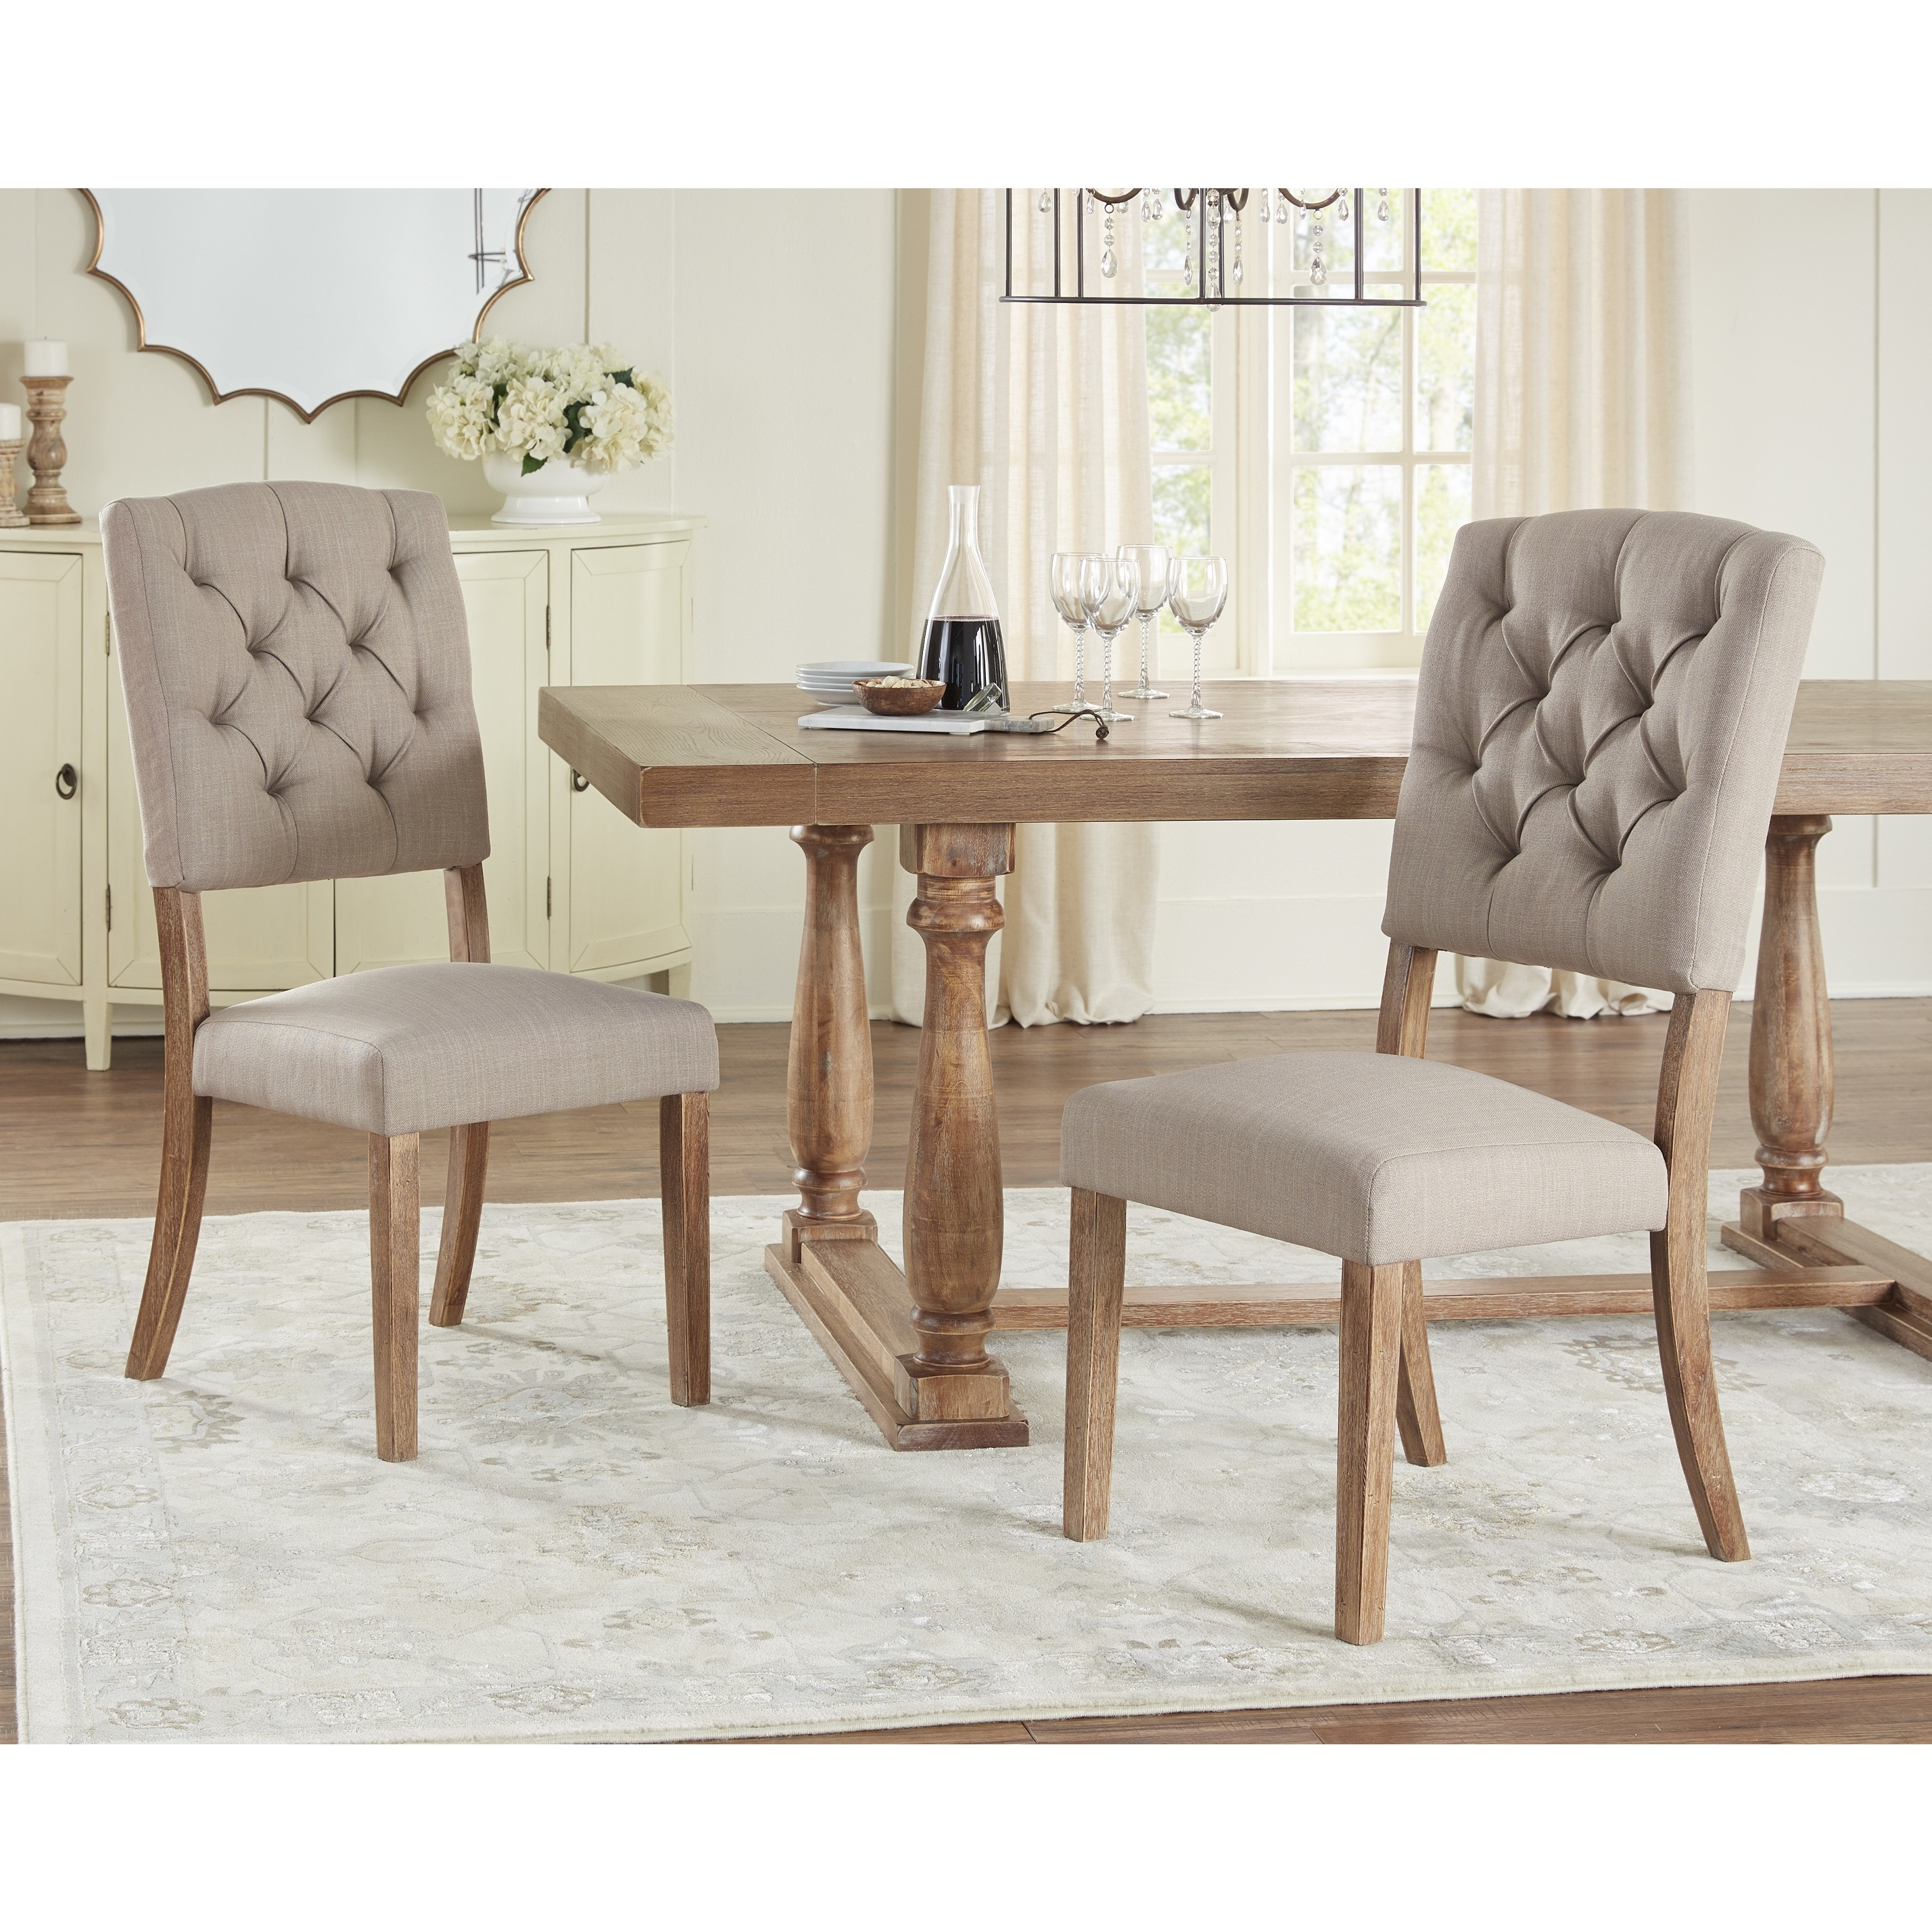 Lifey Heritage Dining Chair Set Of 2